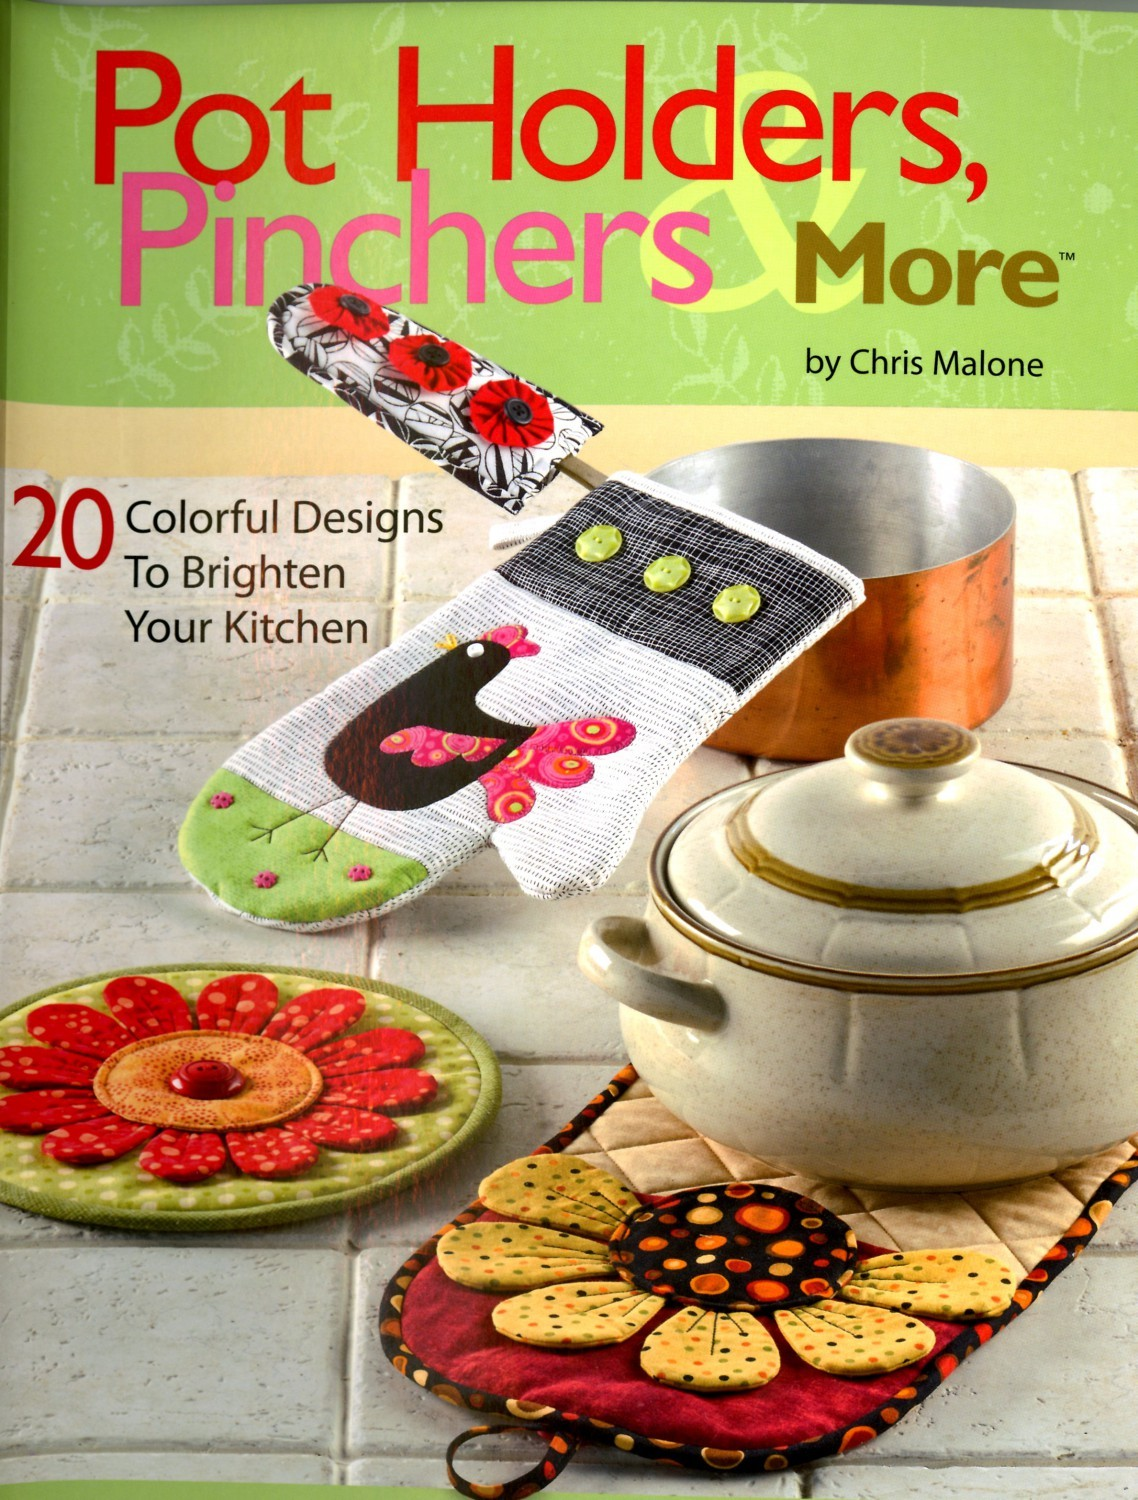 Potholders, Pinchers and More